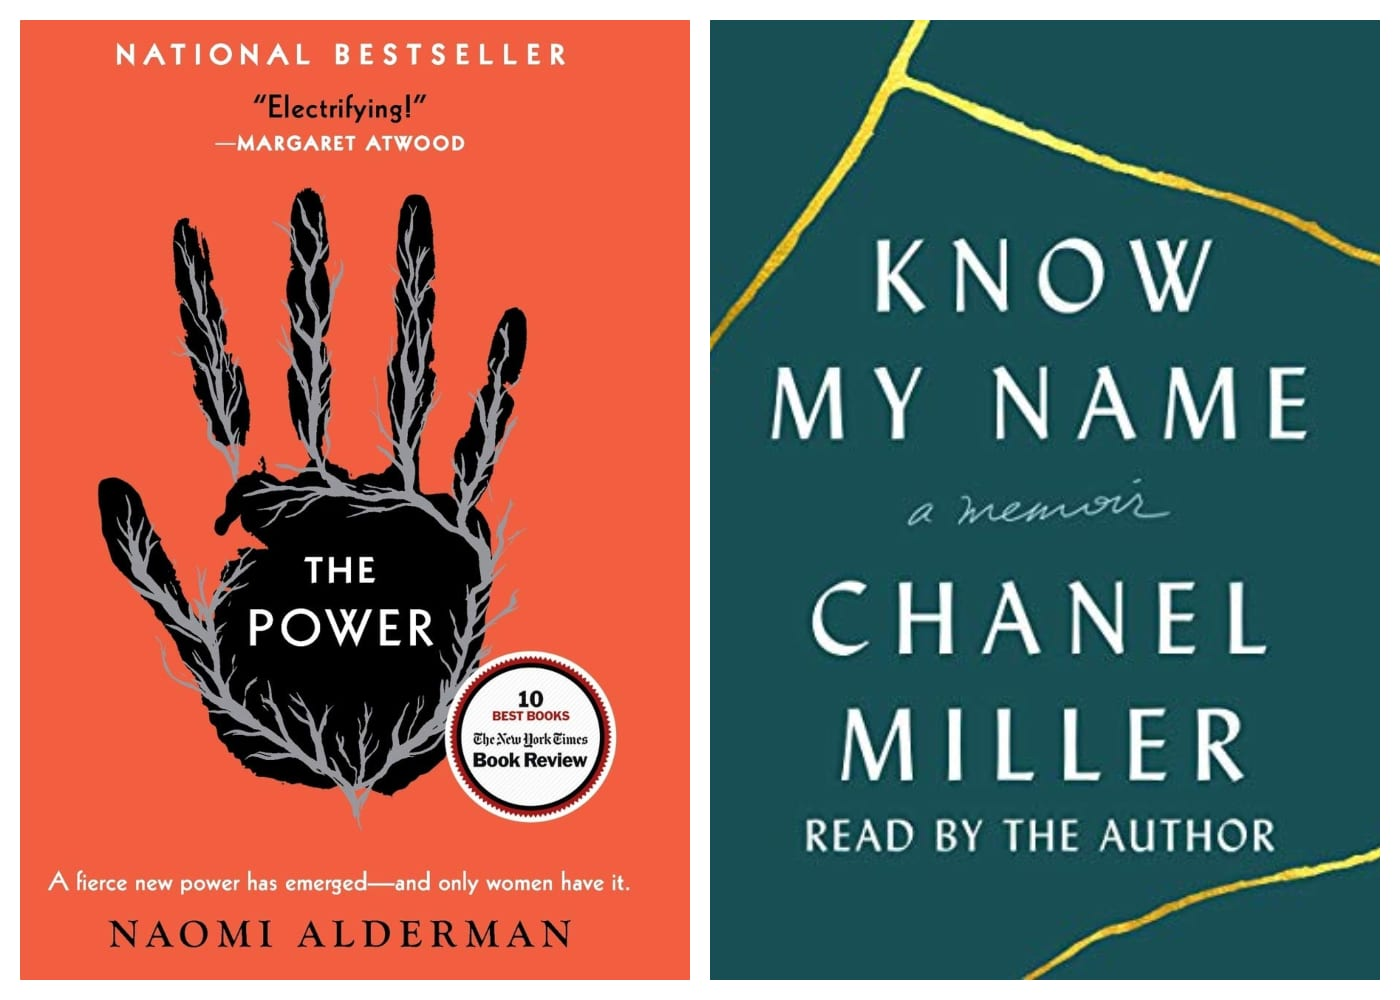 The Power by Naomi Alderman | Know My Name by Chanel Miller | feminist books